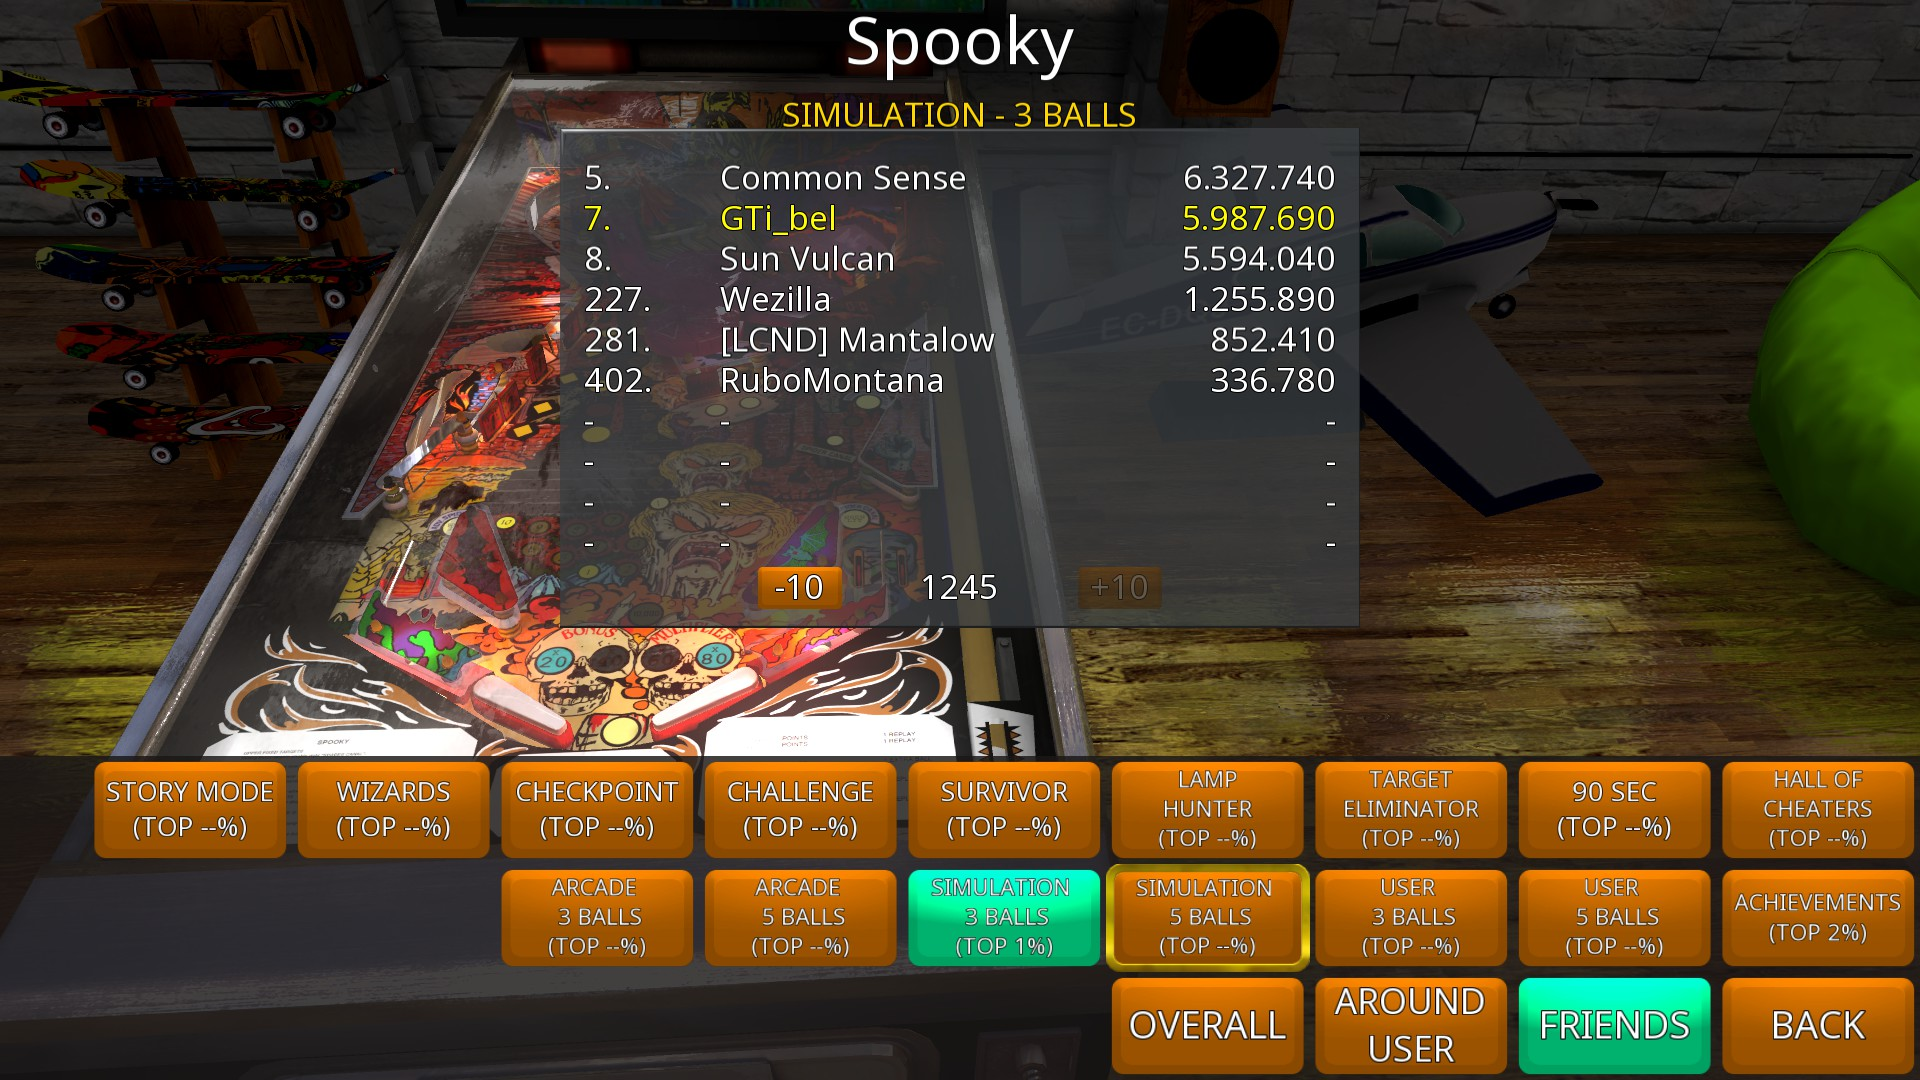 GTibel: Zaccaria Pinball: Spooky [3 balls] (PC) 5,987,690 points on 2018-08-16 13:08:55